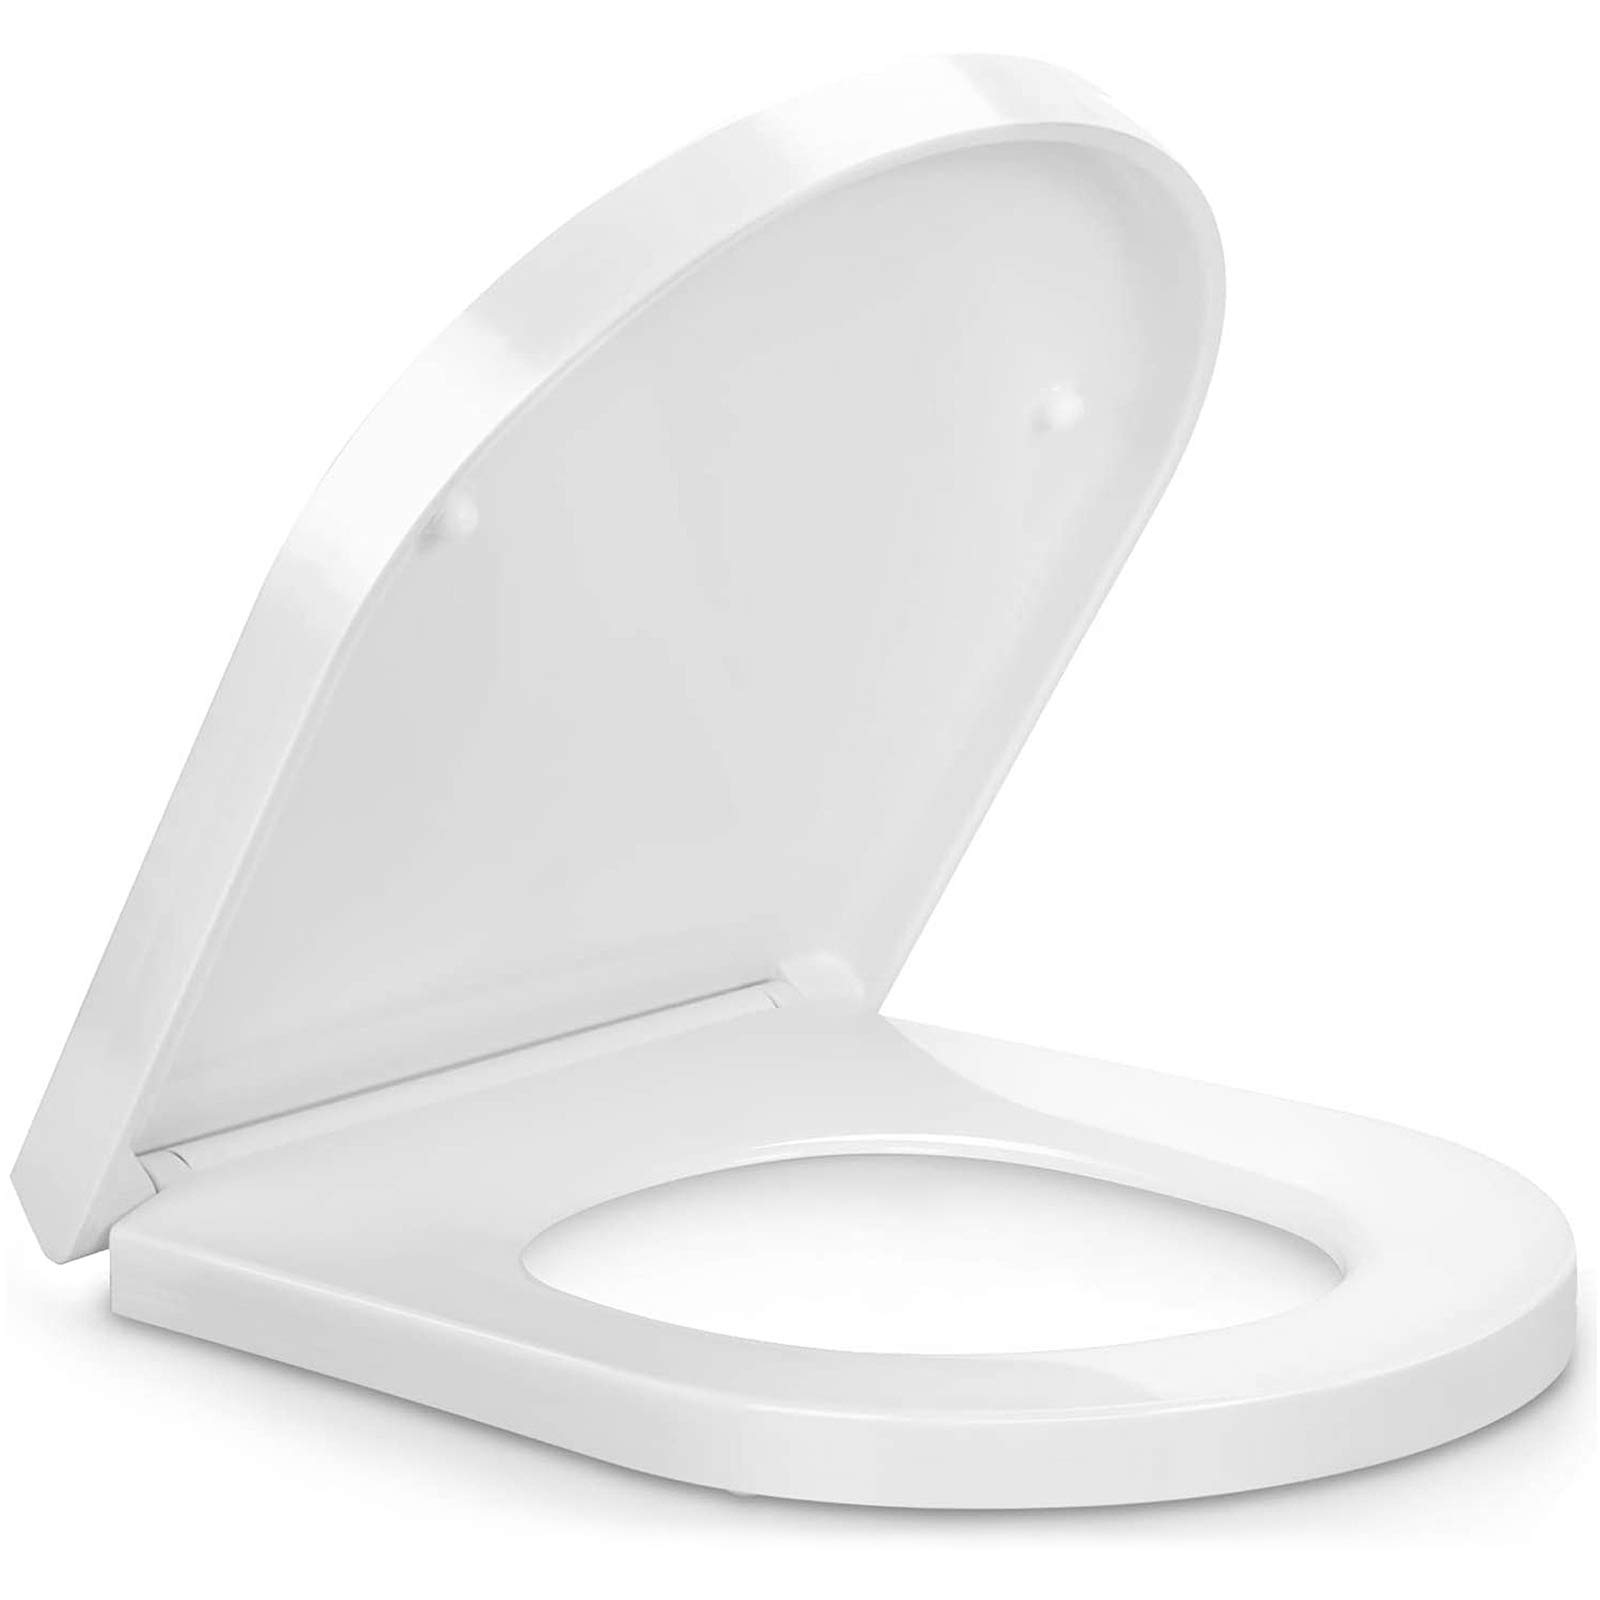 Top//Bottom Fixing for Bathroom Toilets Toilet seat Adjustable Hinges Soft Close Toilet Seats White Quick Release